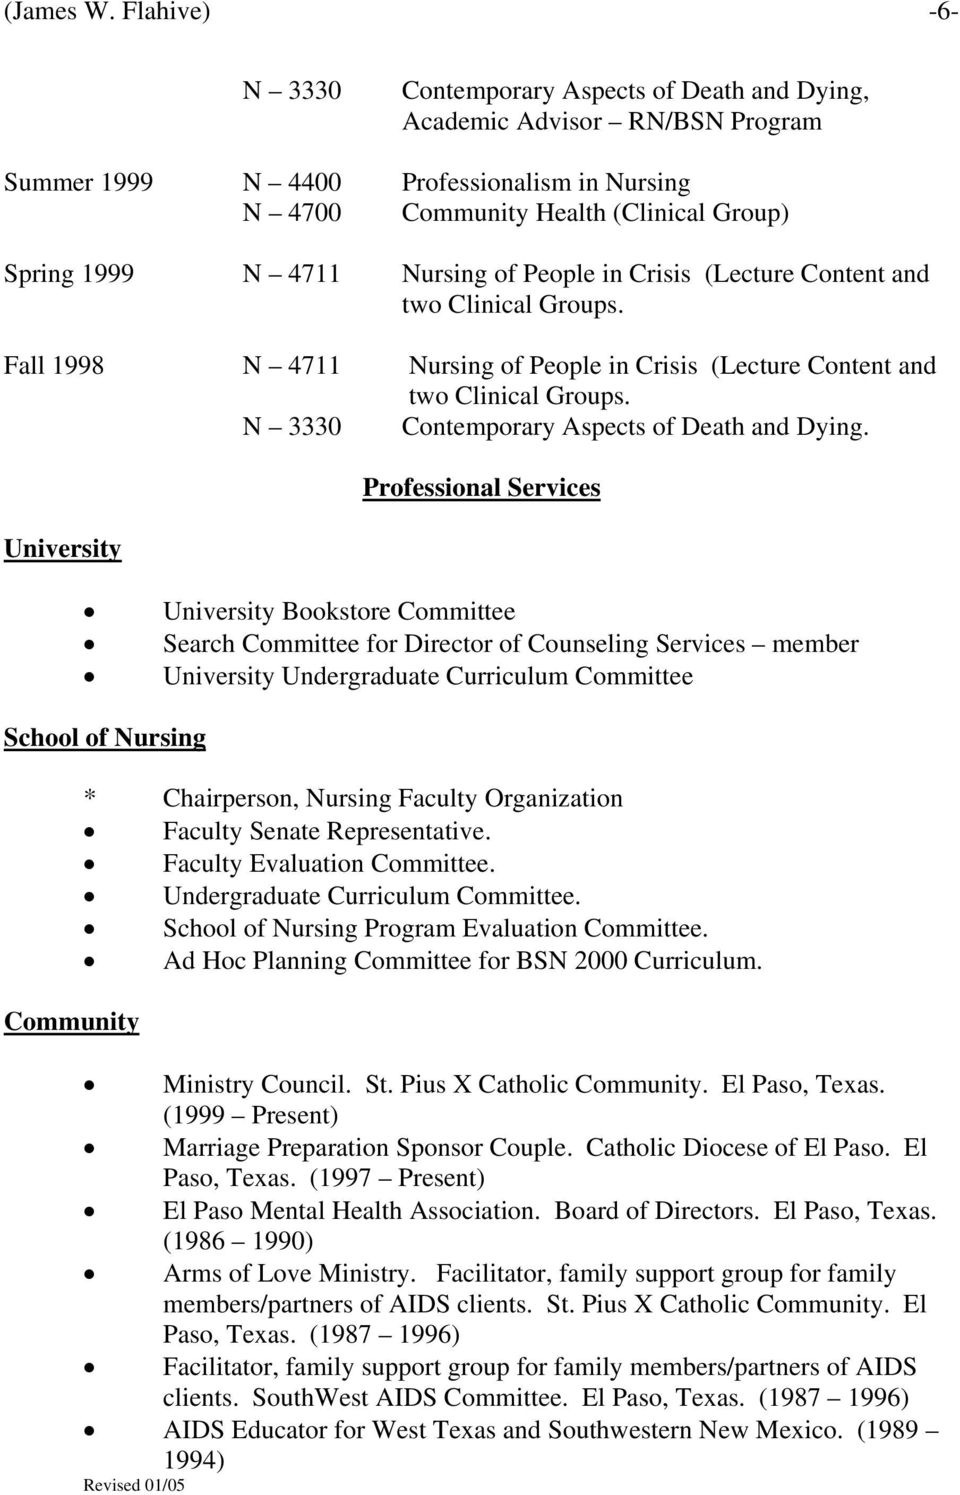 Nursing of People in Crisis (Lecture Content and two Clinical Groups. Fall 1998 N 4711 Nursing of People in Crisis (Lecture Content and two Clinical Groups.